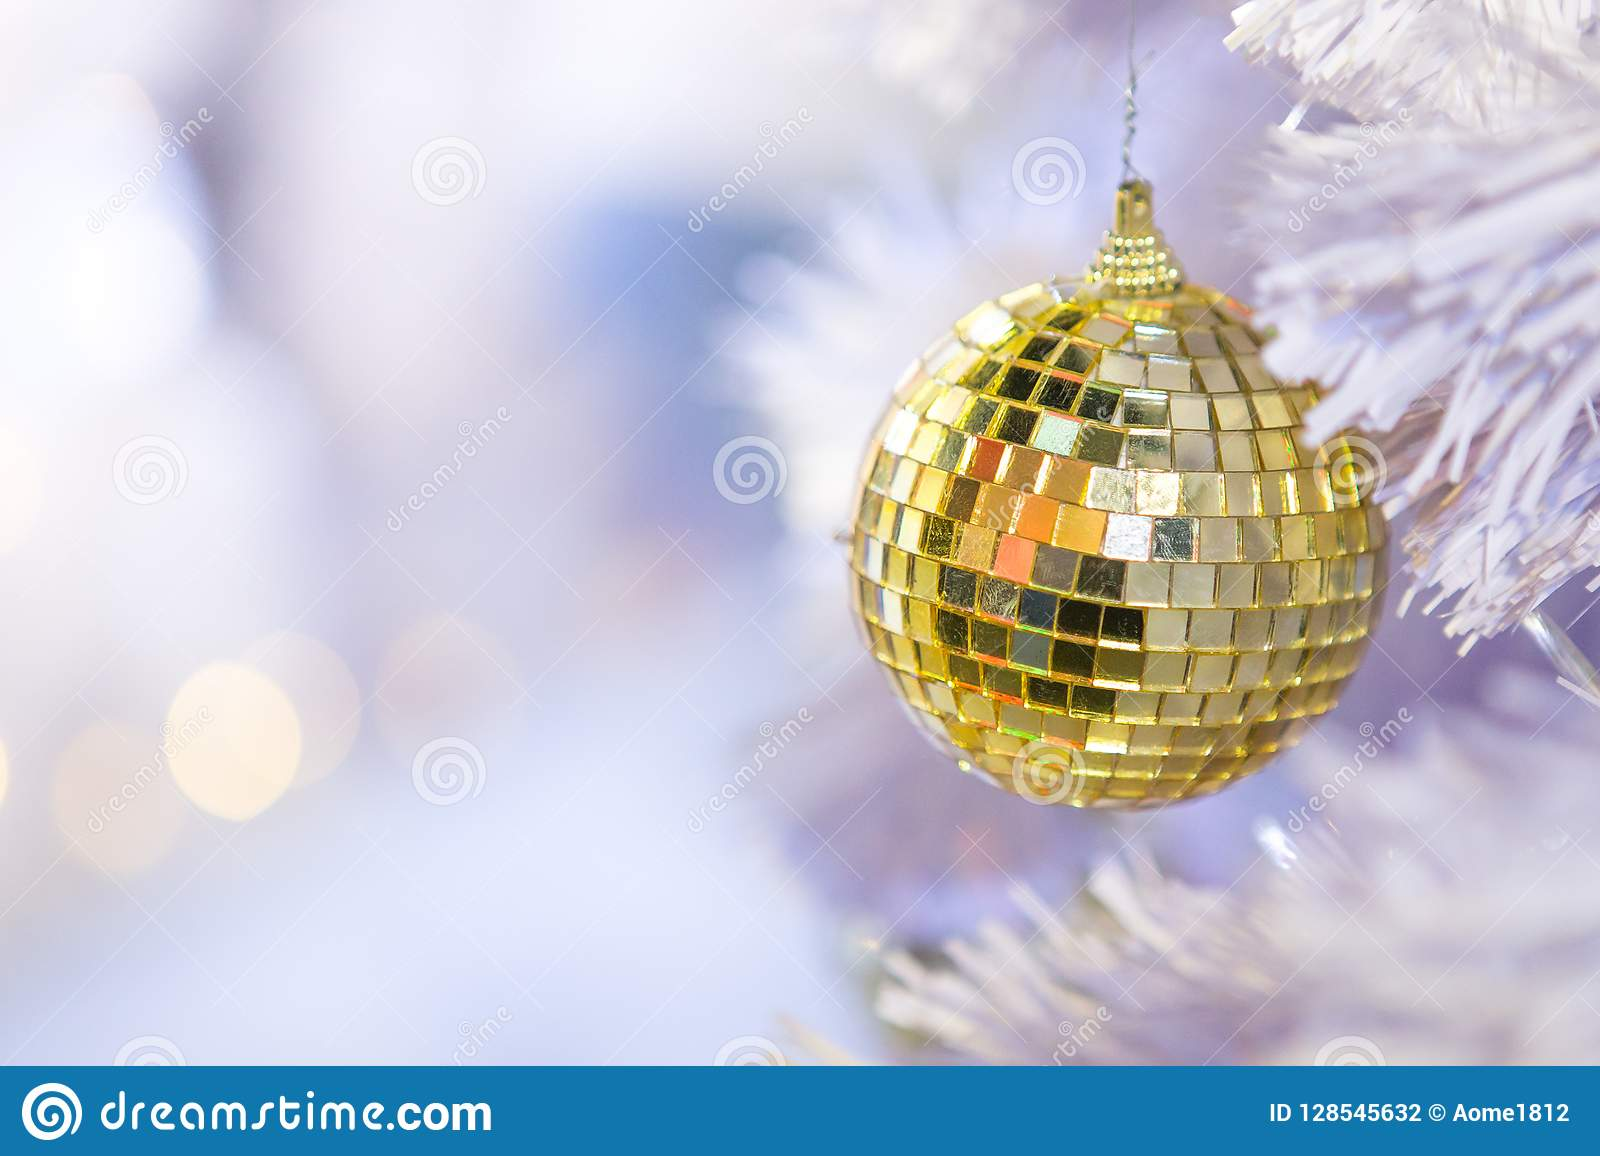 Silver and gold mirror balls on a white Christmas tree